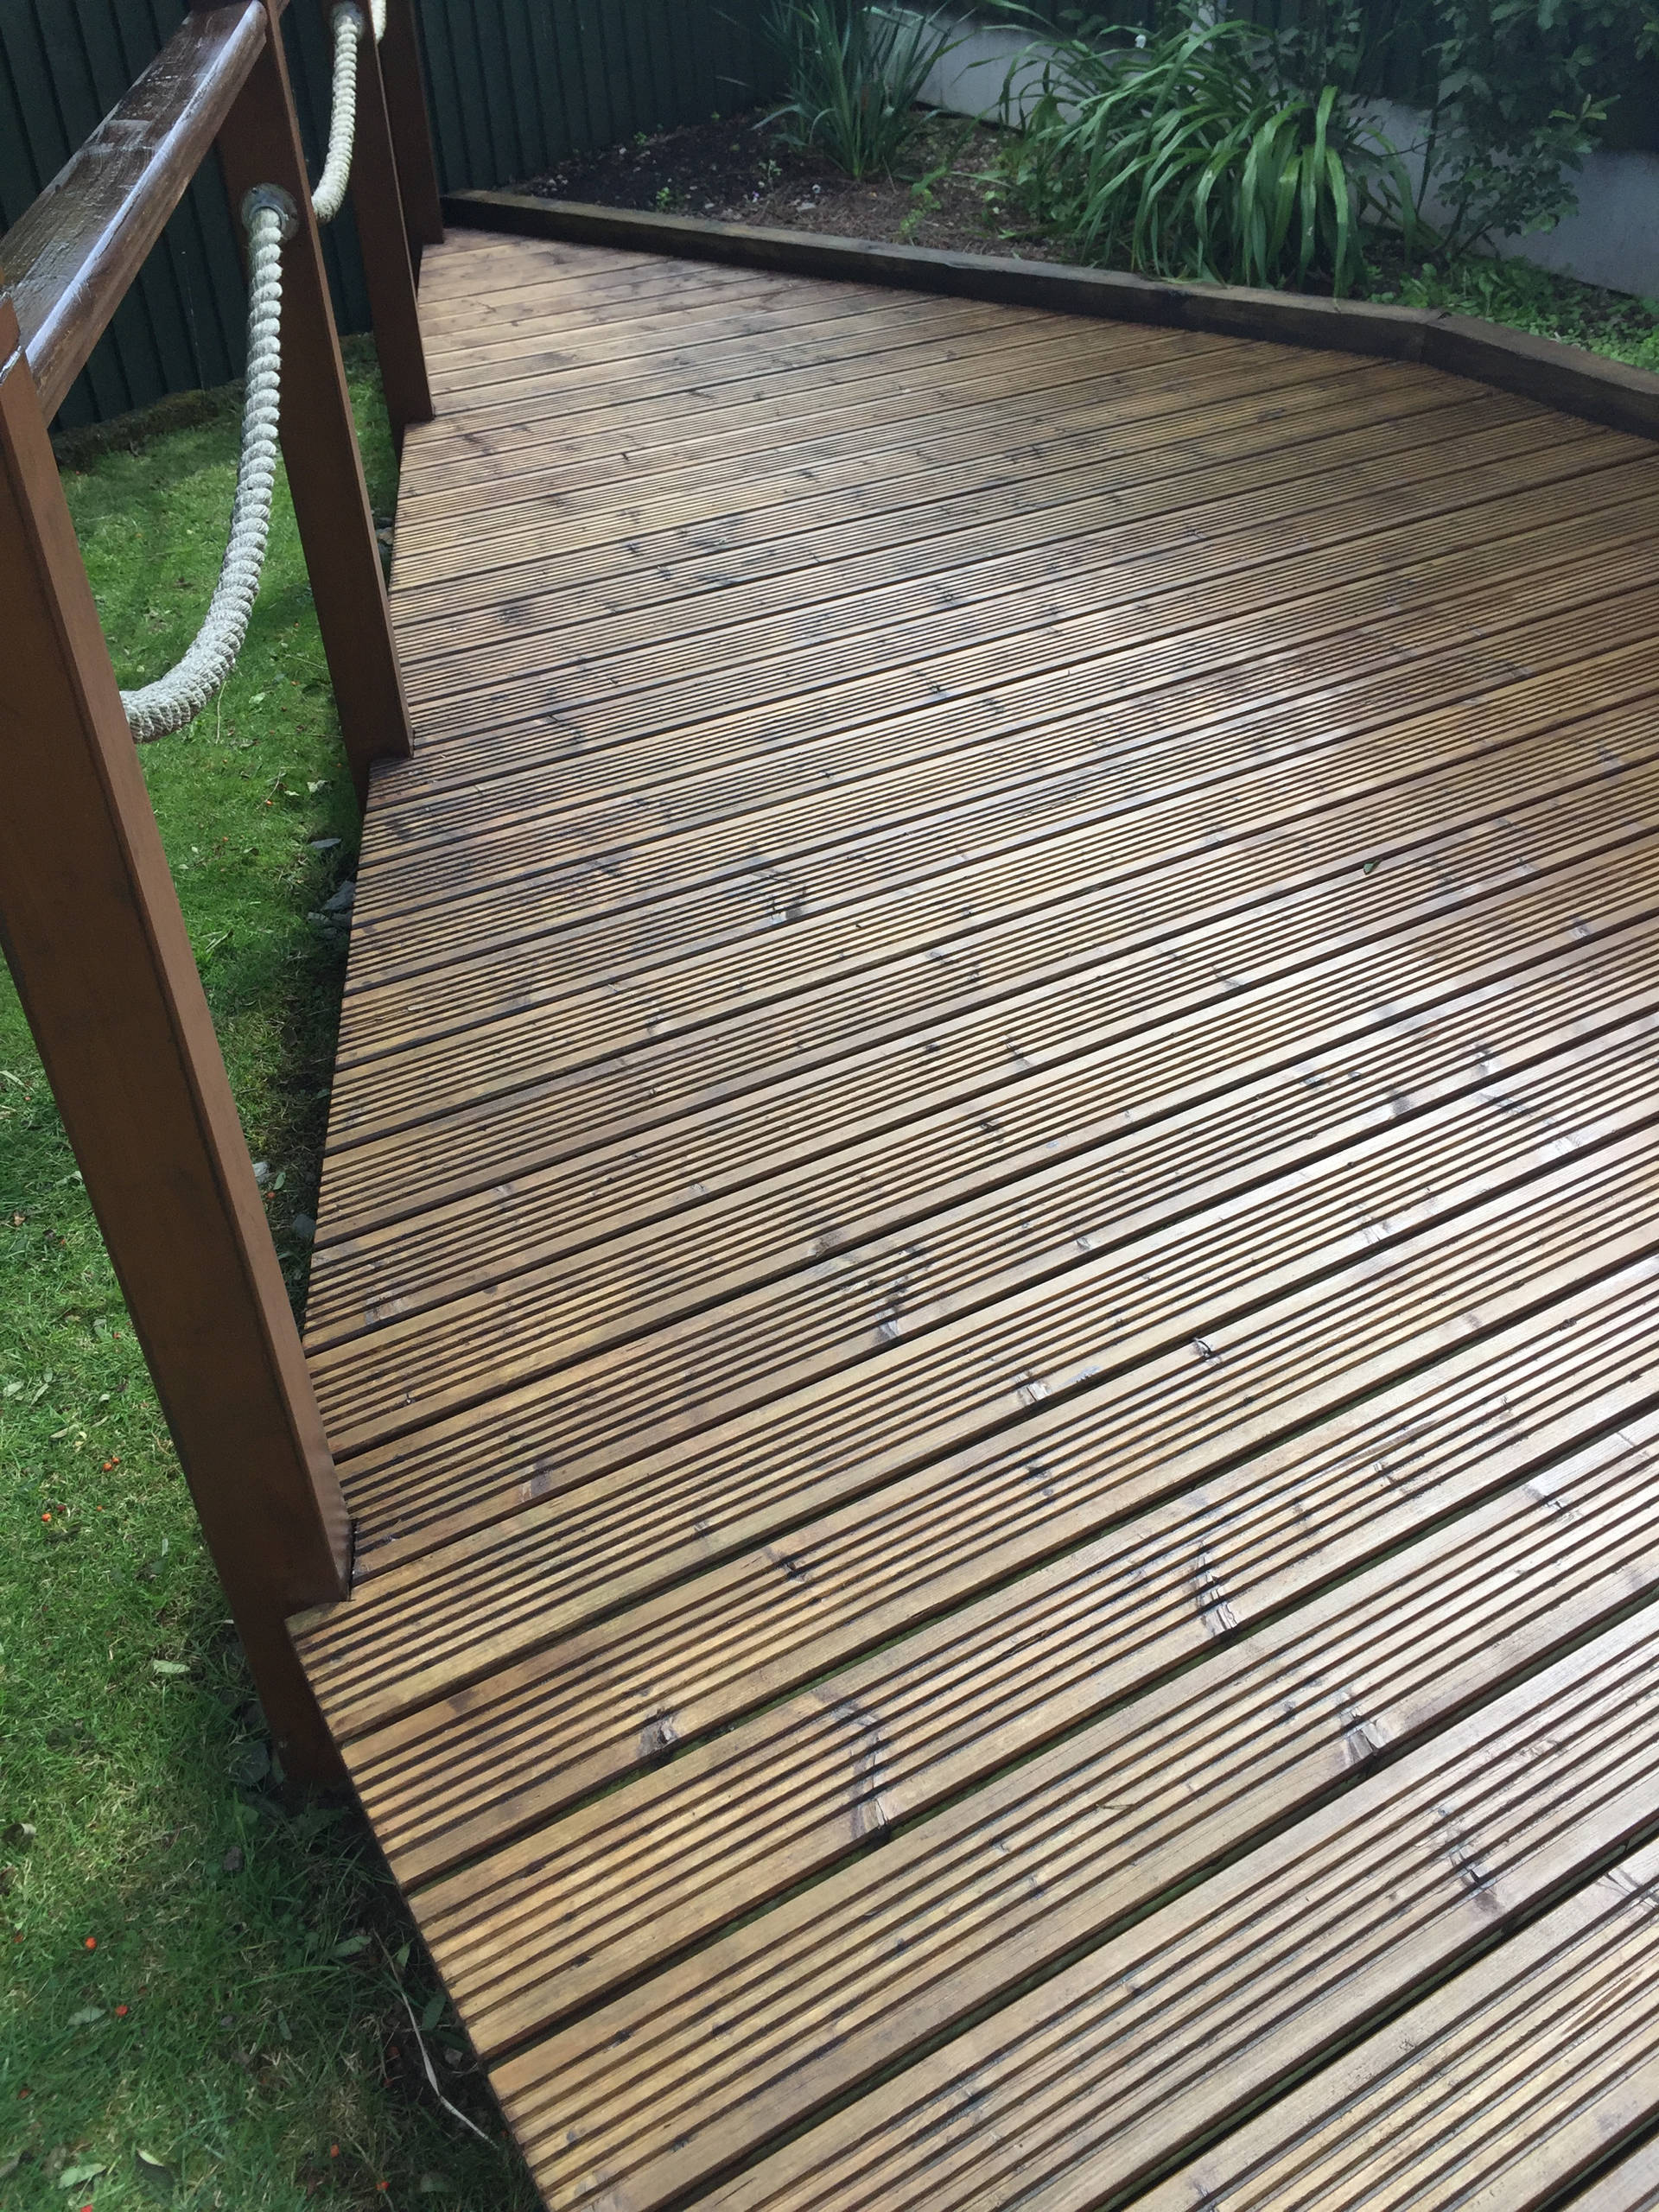 Decking After Cleaning and Staining